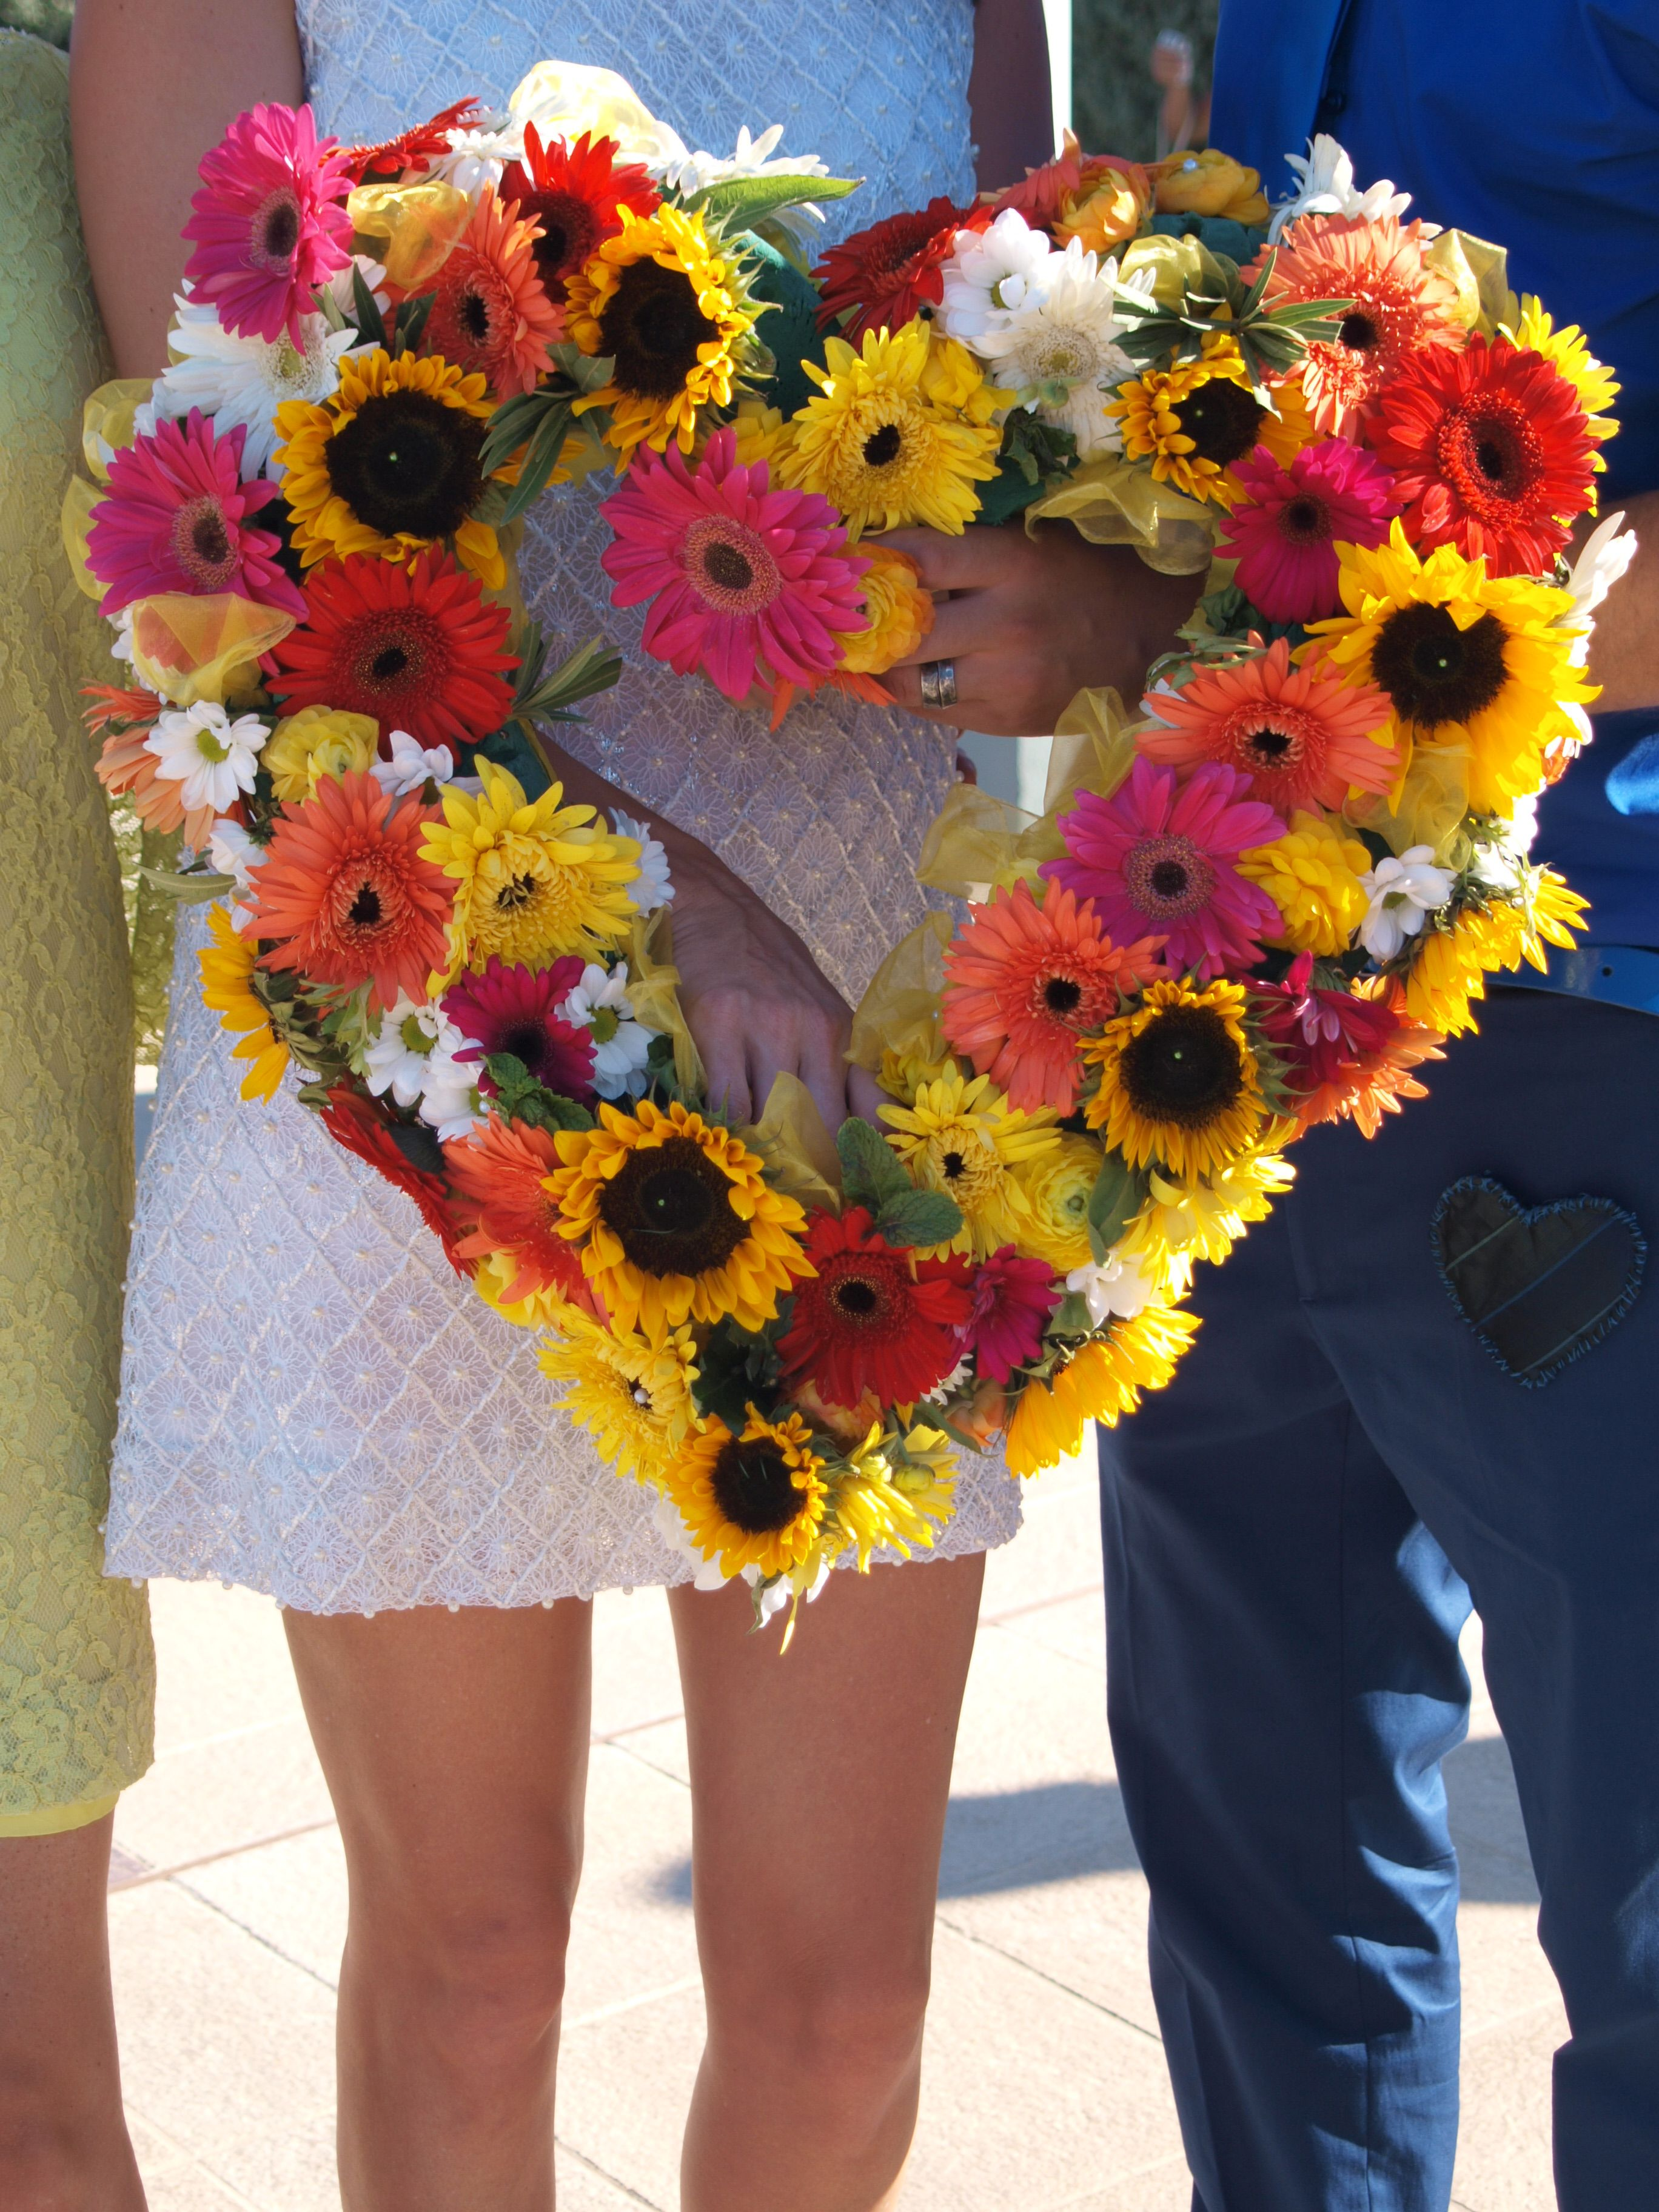 Get creative with your bouquet girls!